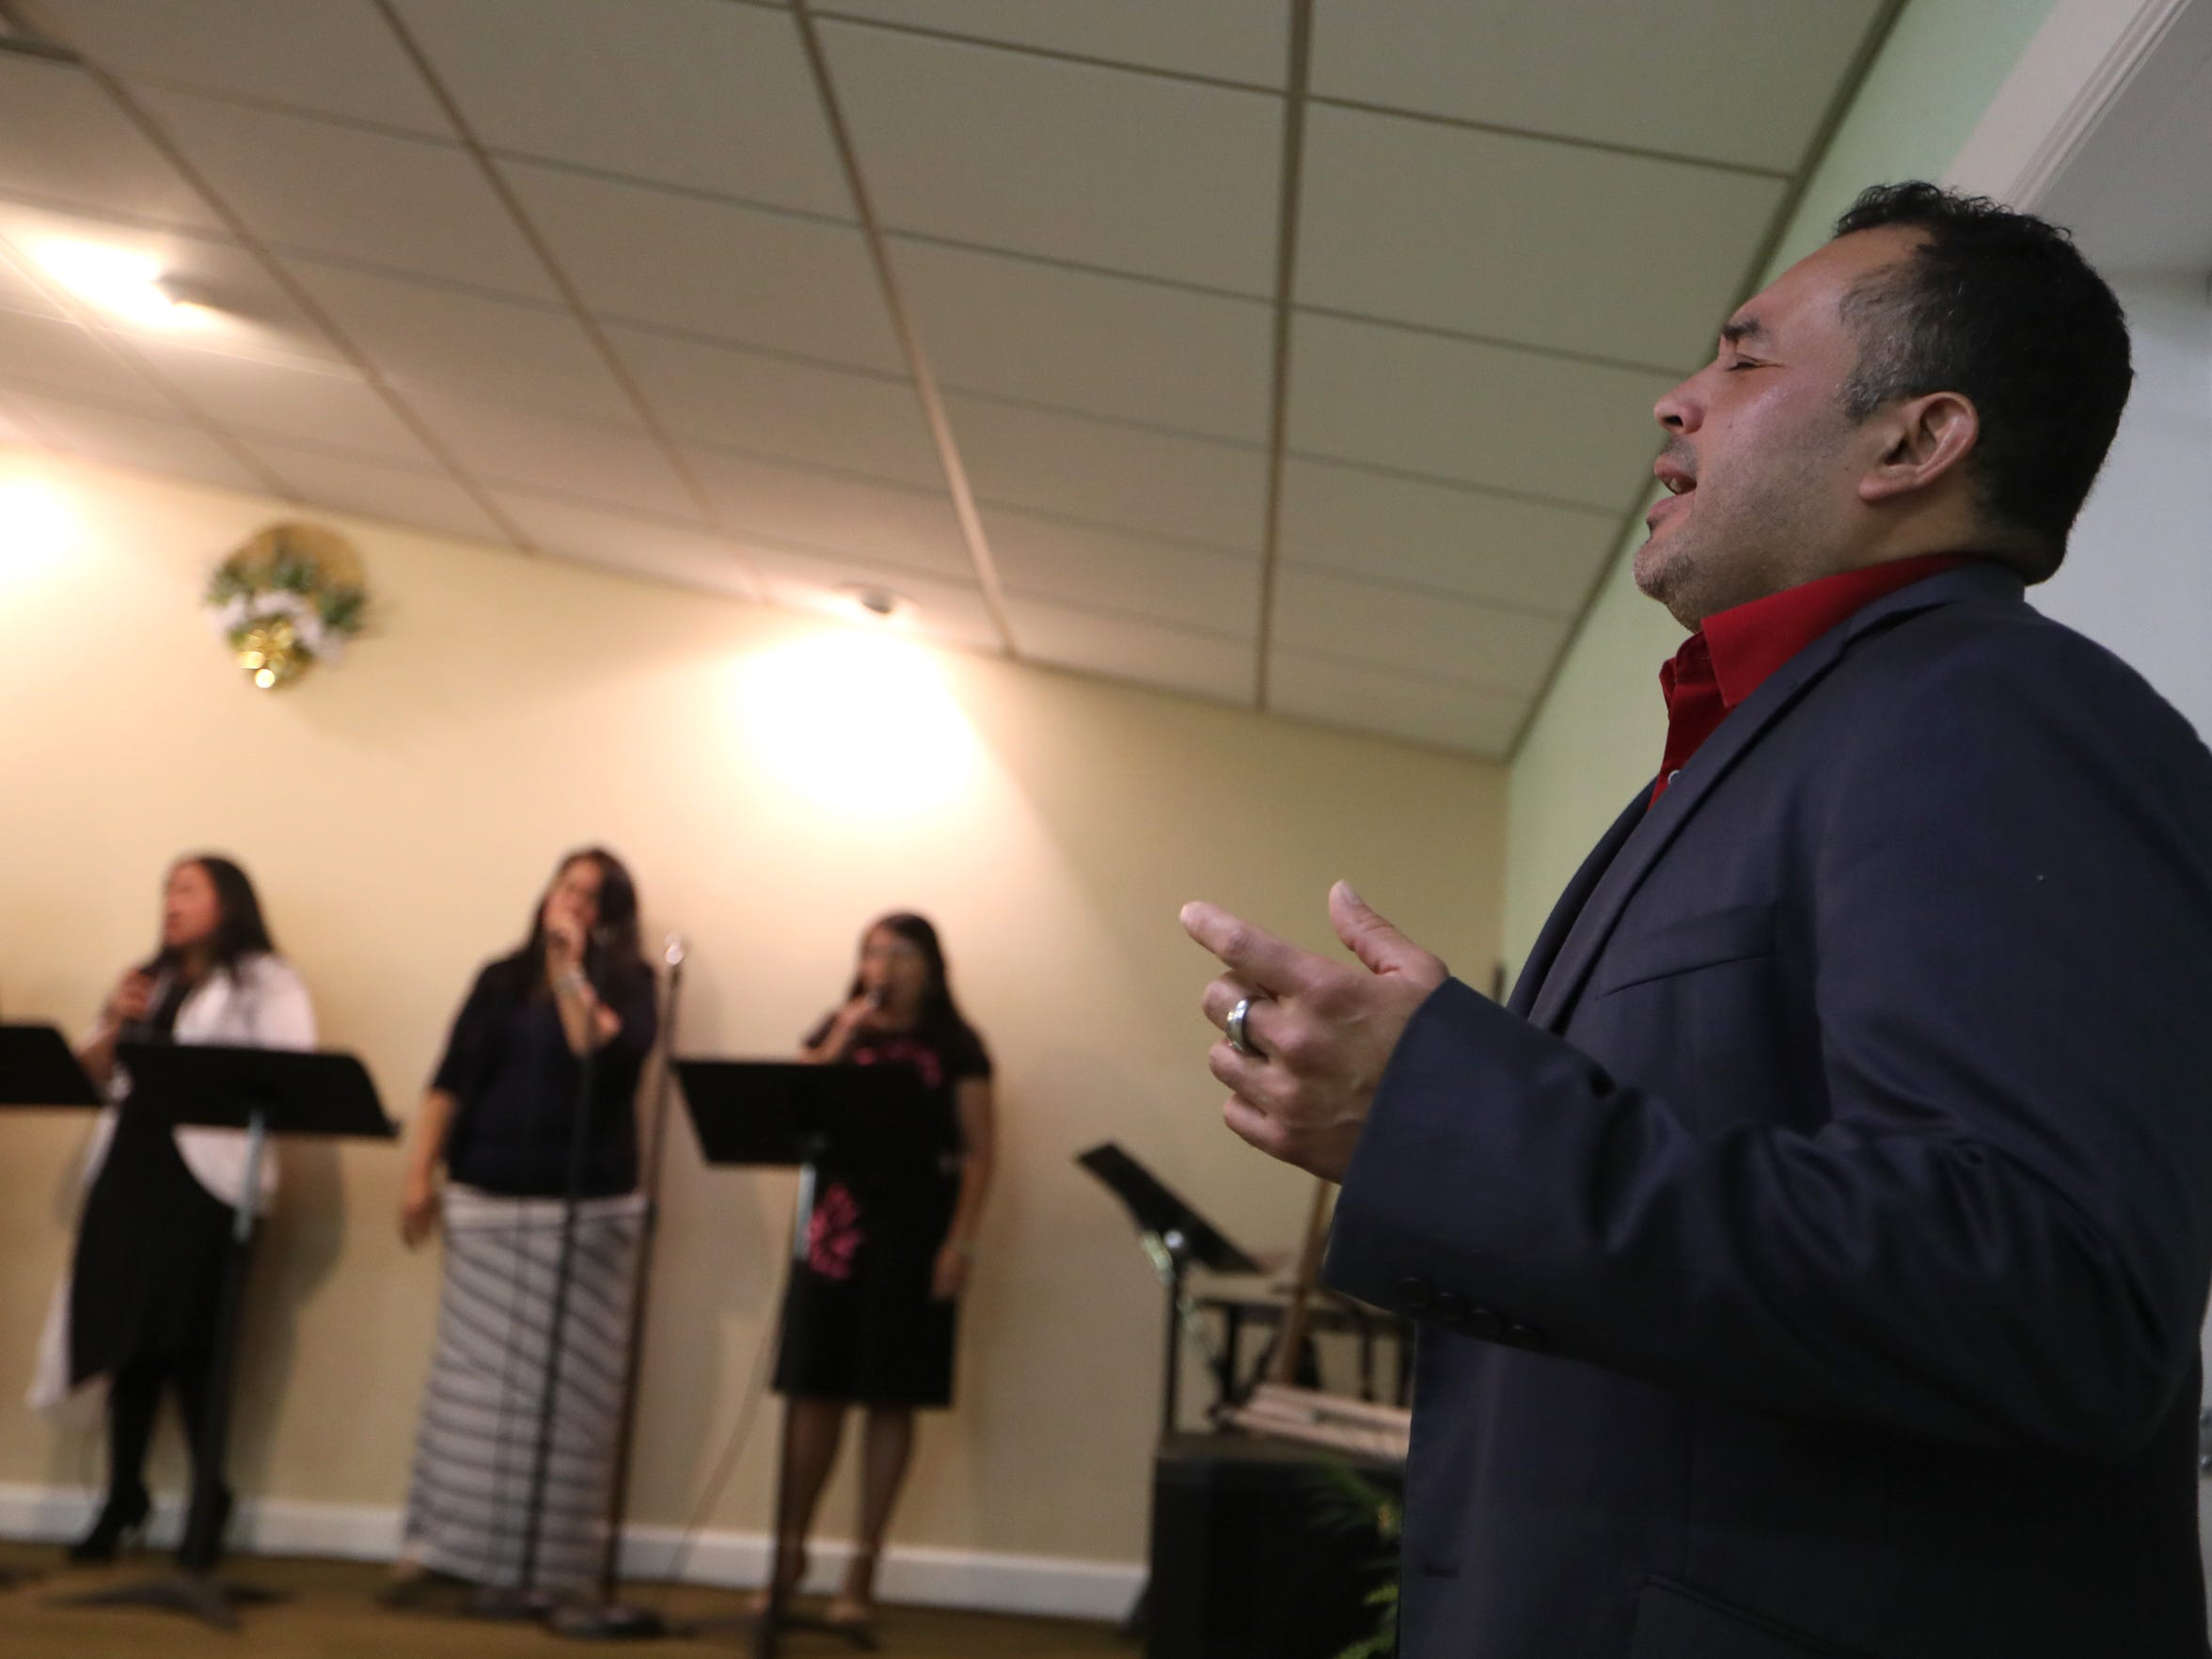 Ronal Vasquez sings along with parishioners before